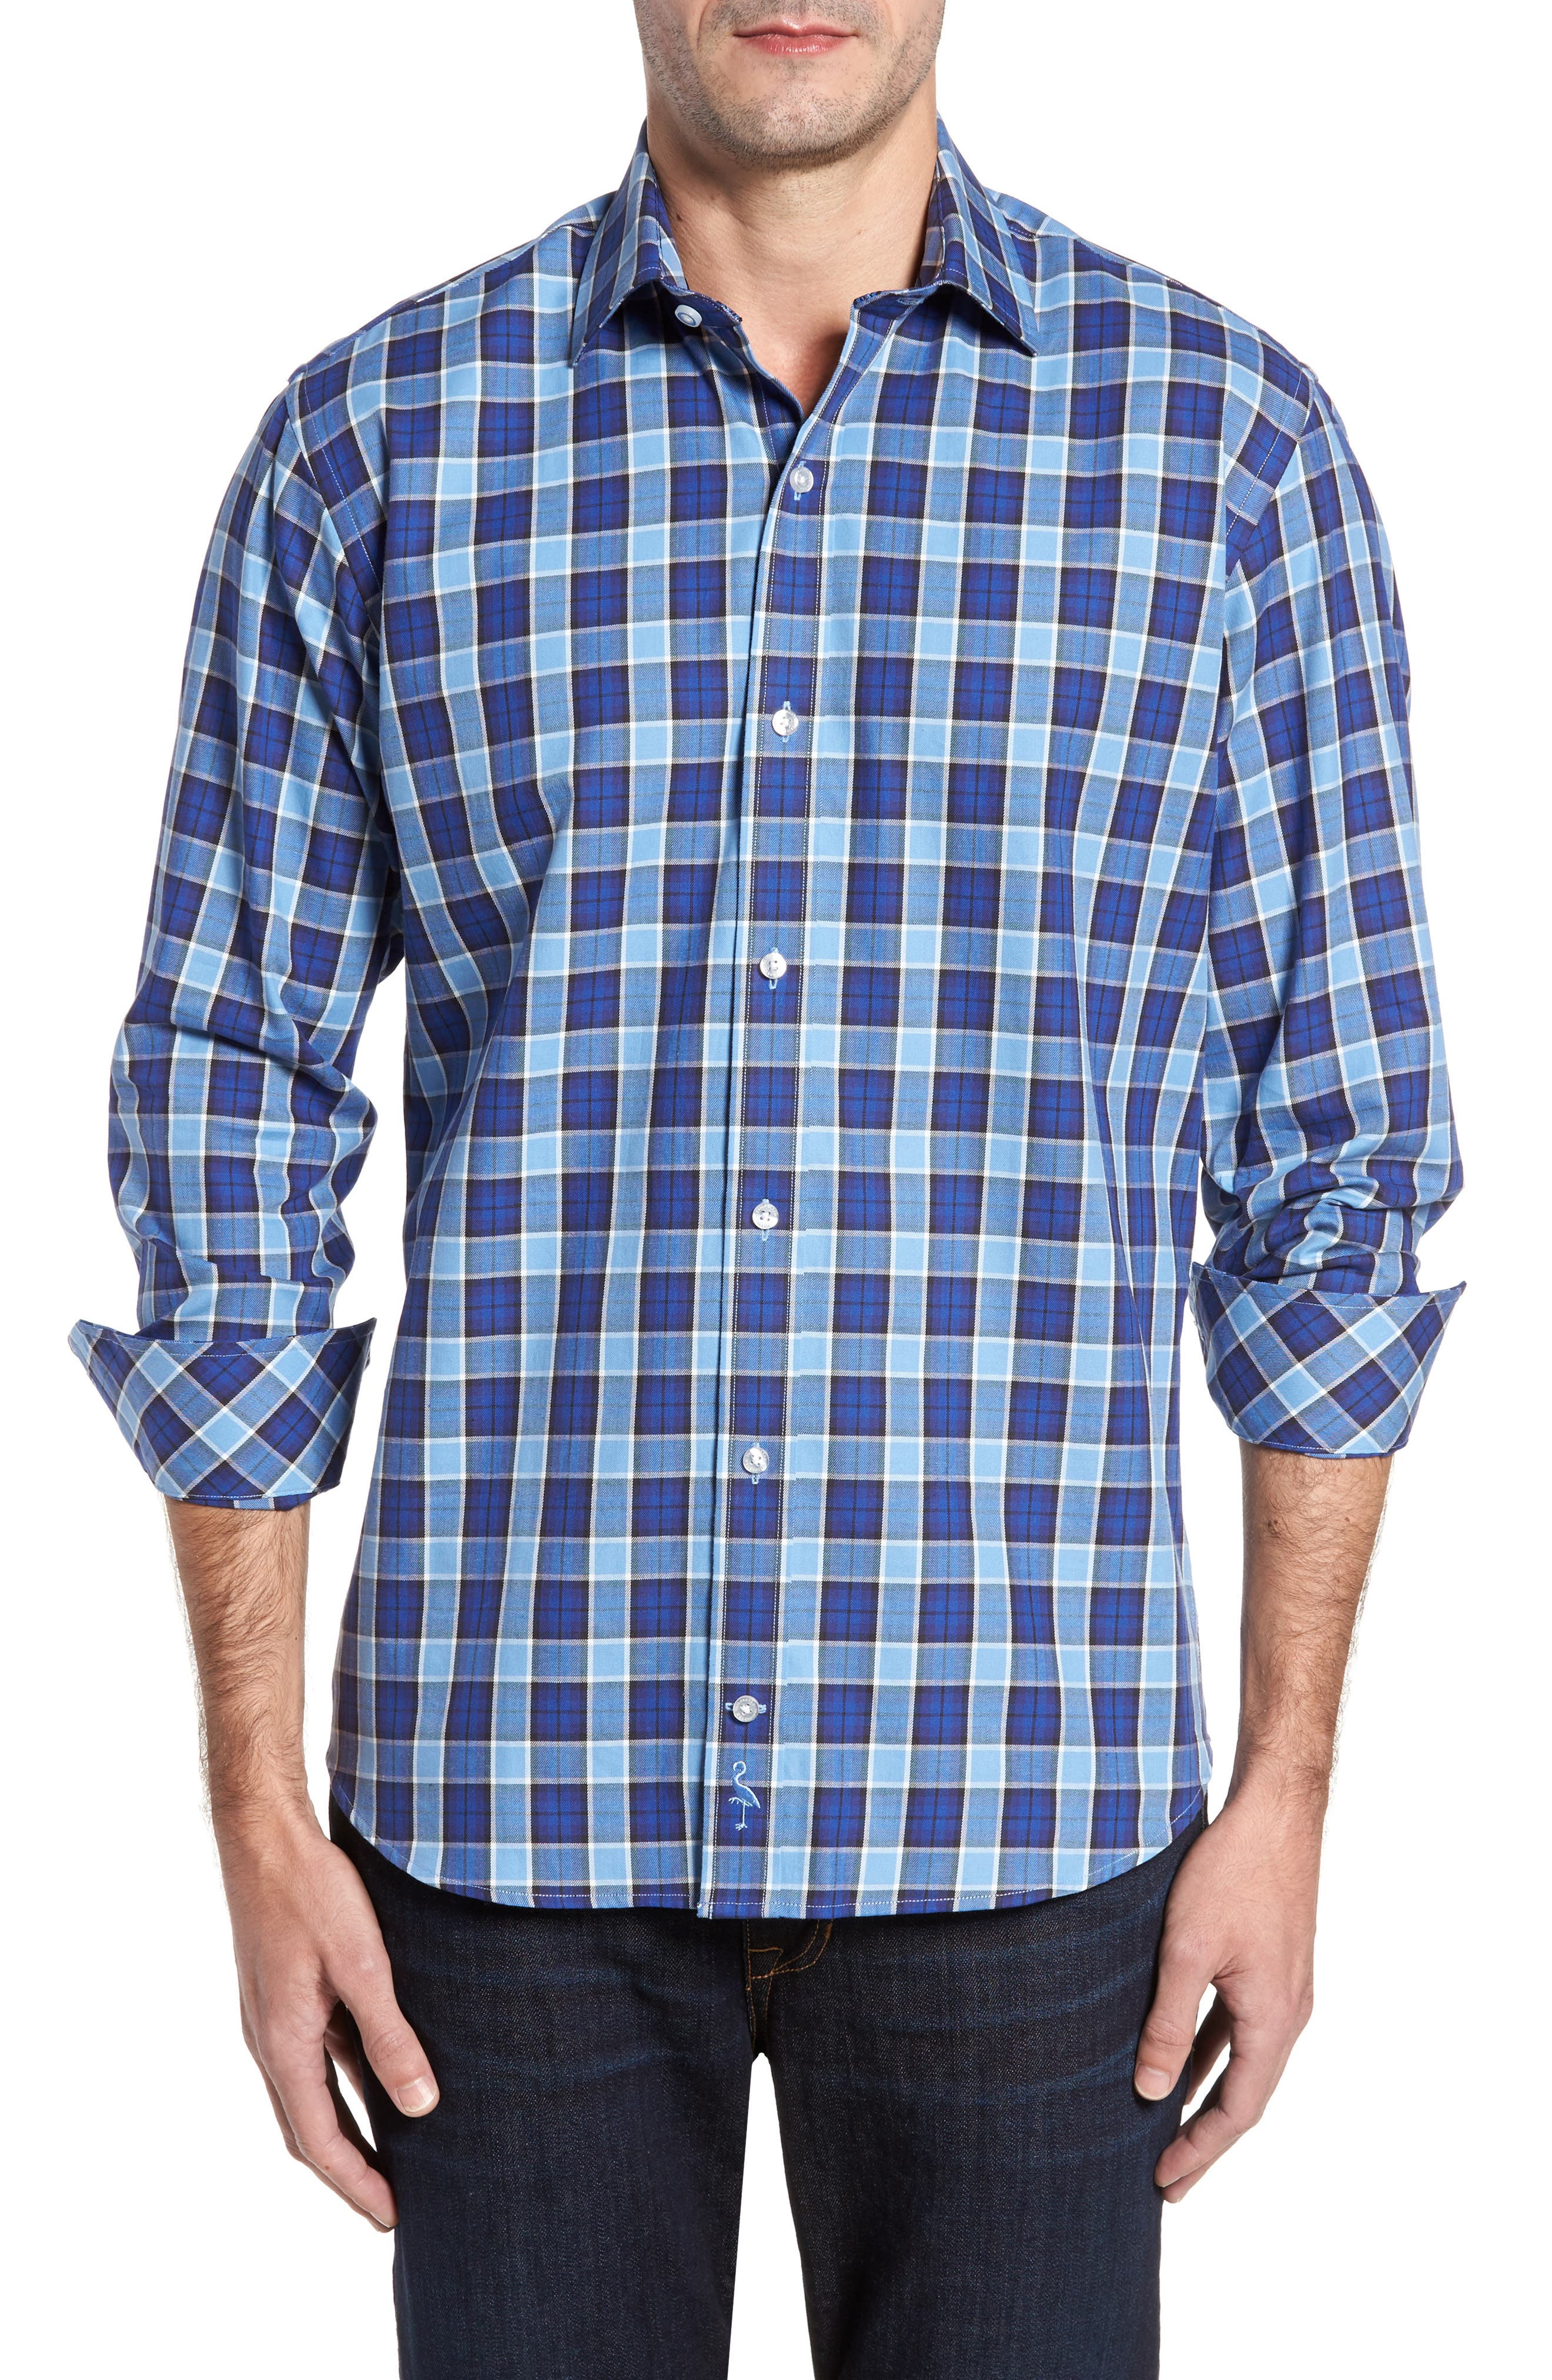 Main Image - TailorByrd Boothville Check Sport Shirt